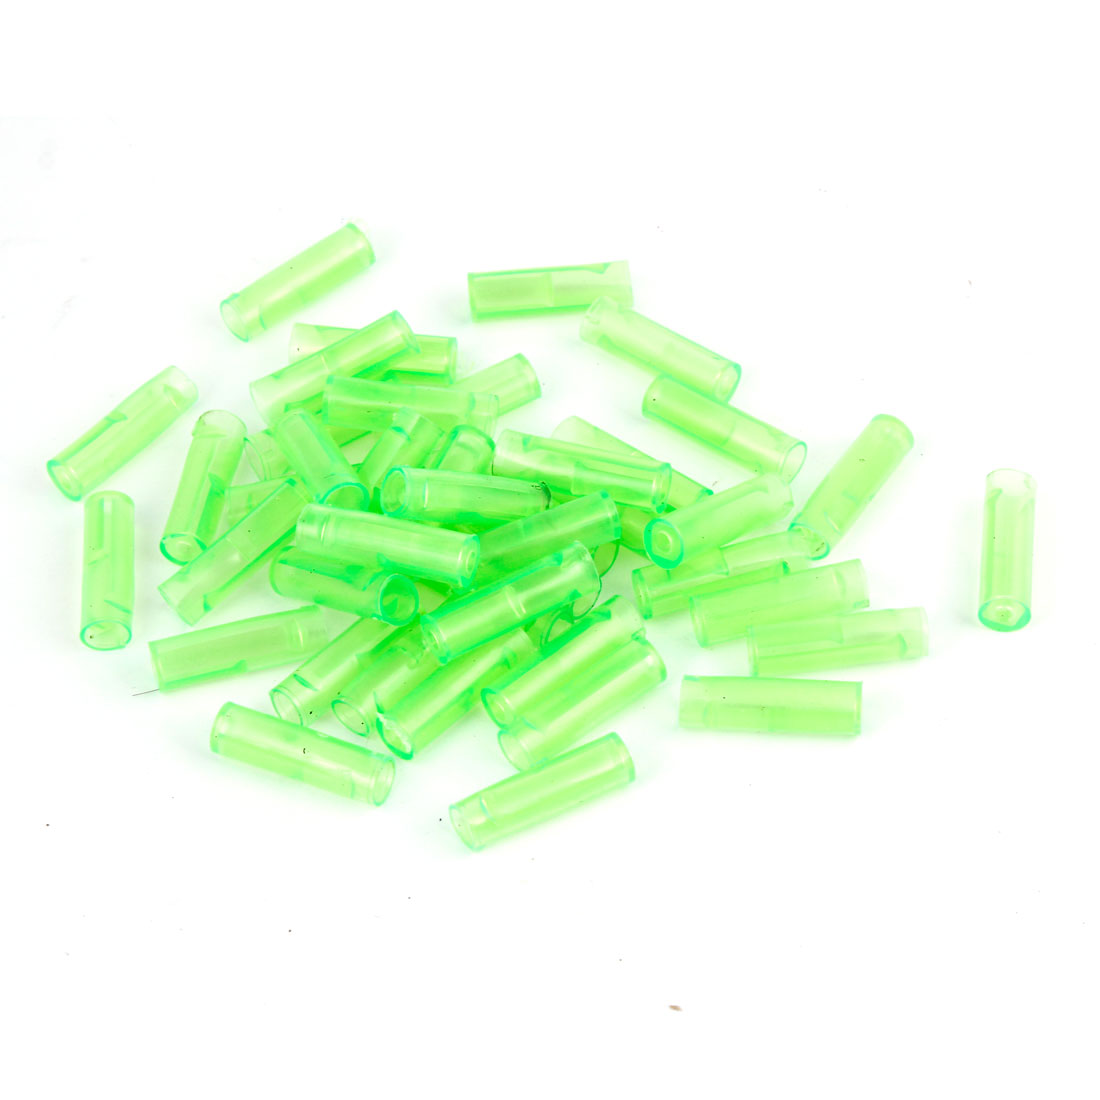 50 Pcs Green Connectors 6mm Dia Terminal Sleeves for Motorcycle Car